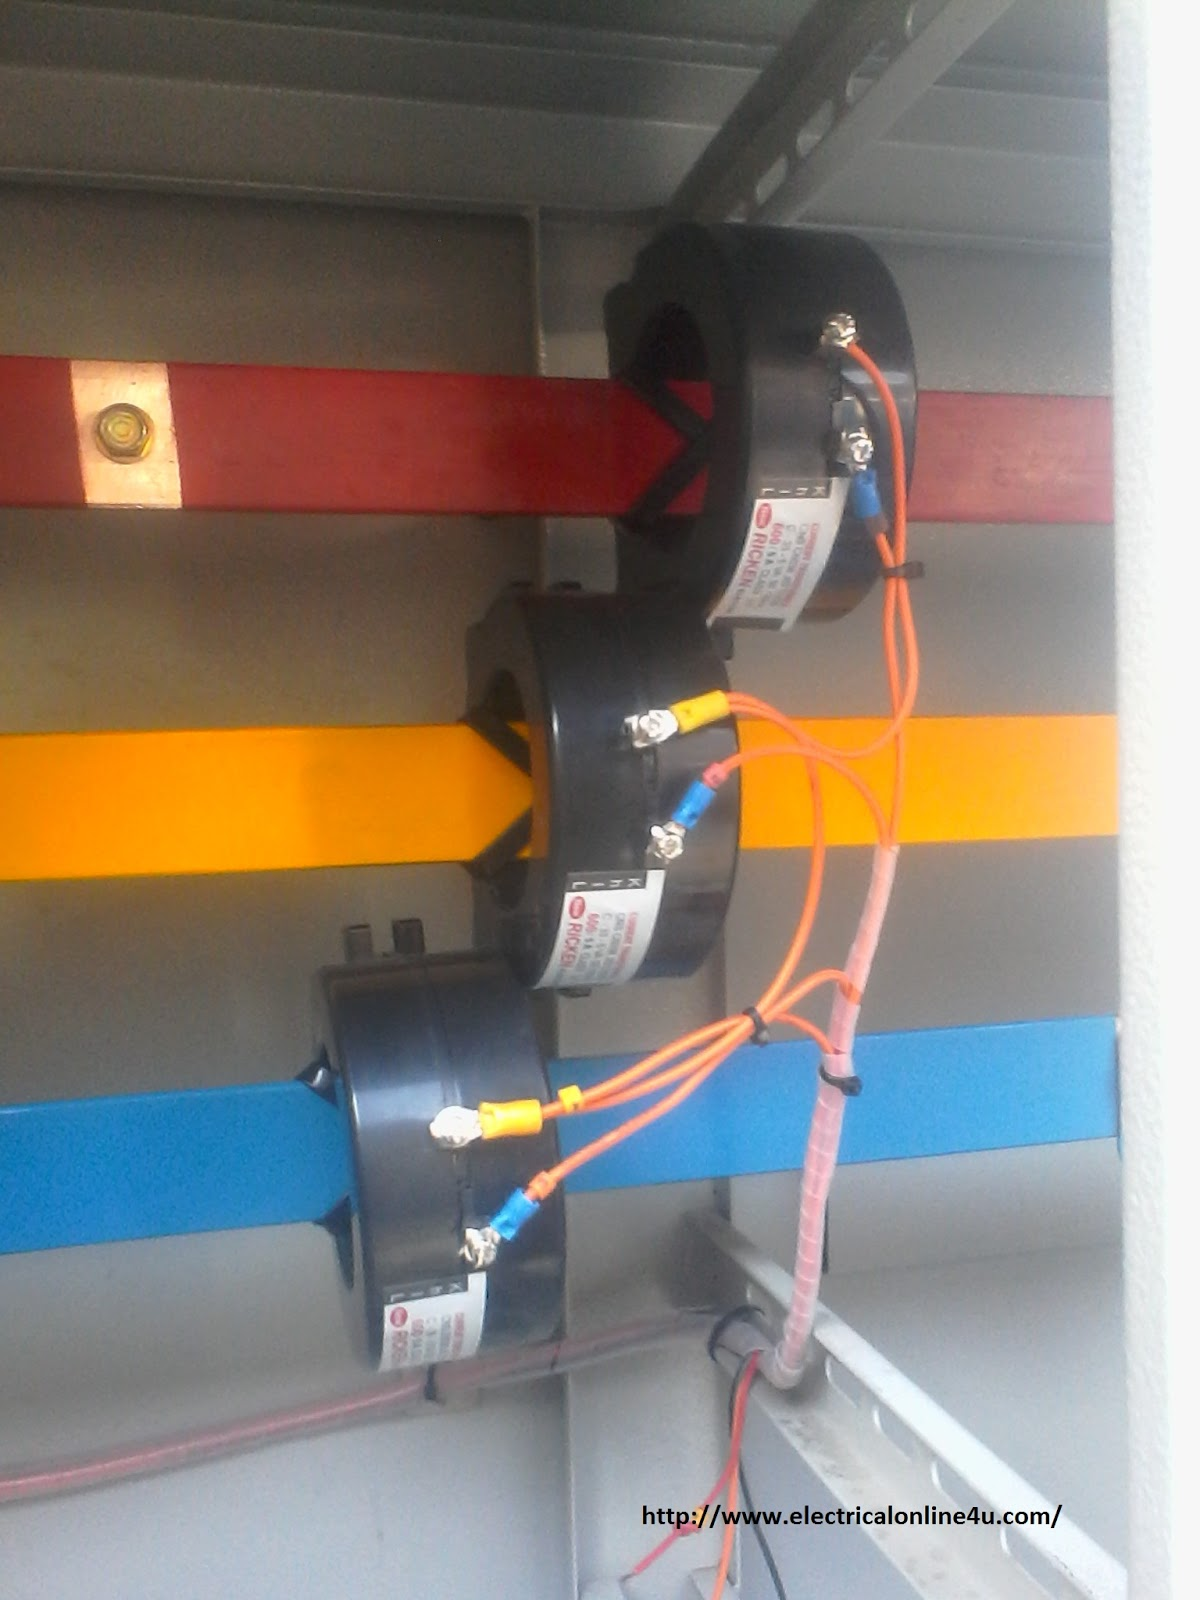 current%2Btransformer%2Binstillation%2Bfor%2Bthree%2Bphase%2Bwiring current transformer installation for three phase power supply ct Basic Electrical Wiring Diagrams at gsmportal.co